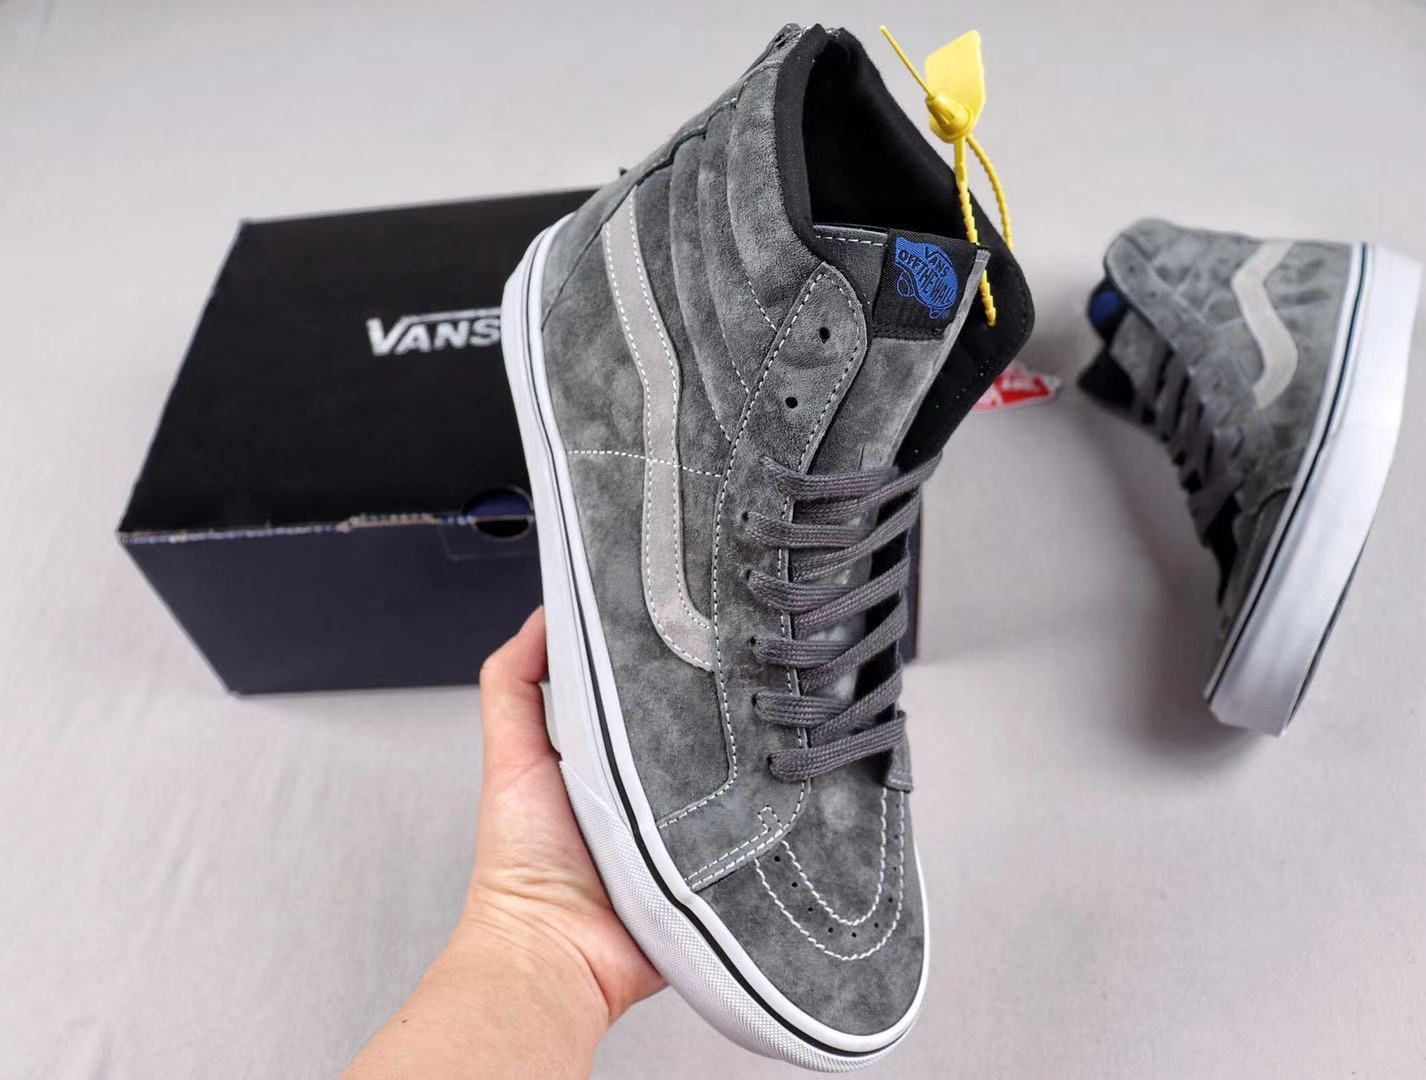 Madness x Vans SK8-Hi Suede Uppers Grey/White New Arrival Sneakers